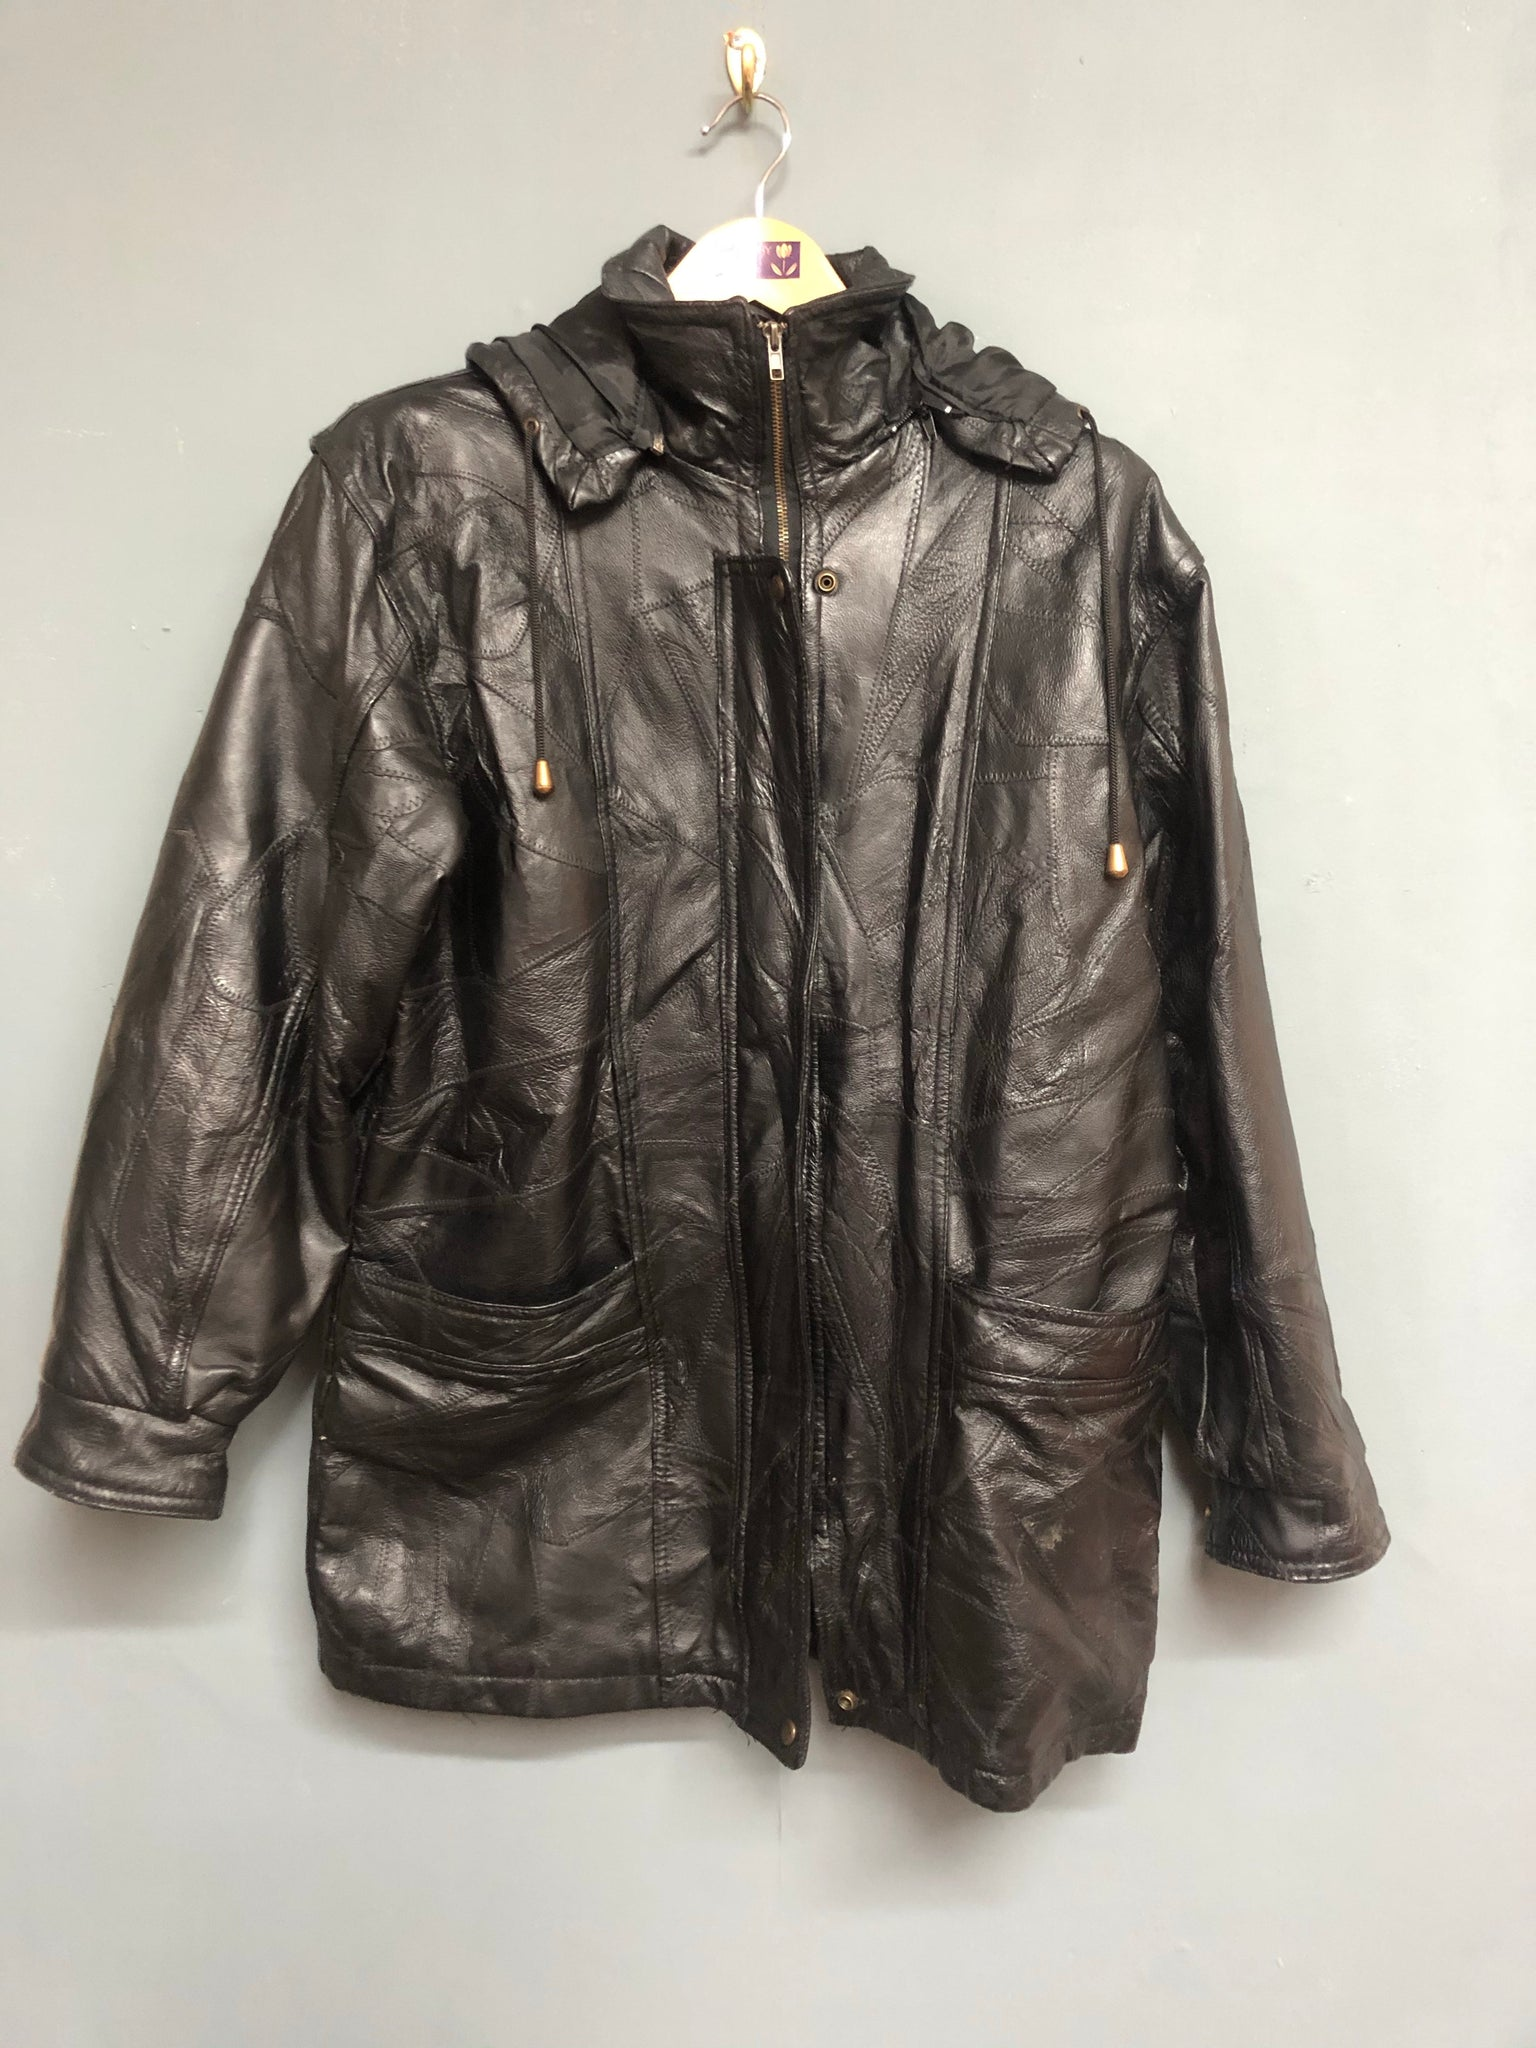 Black Patchwork Leather Jacket Size S